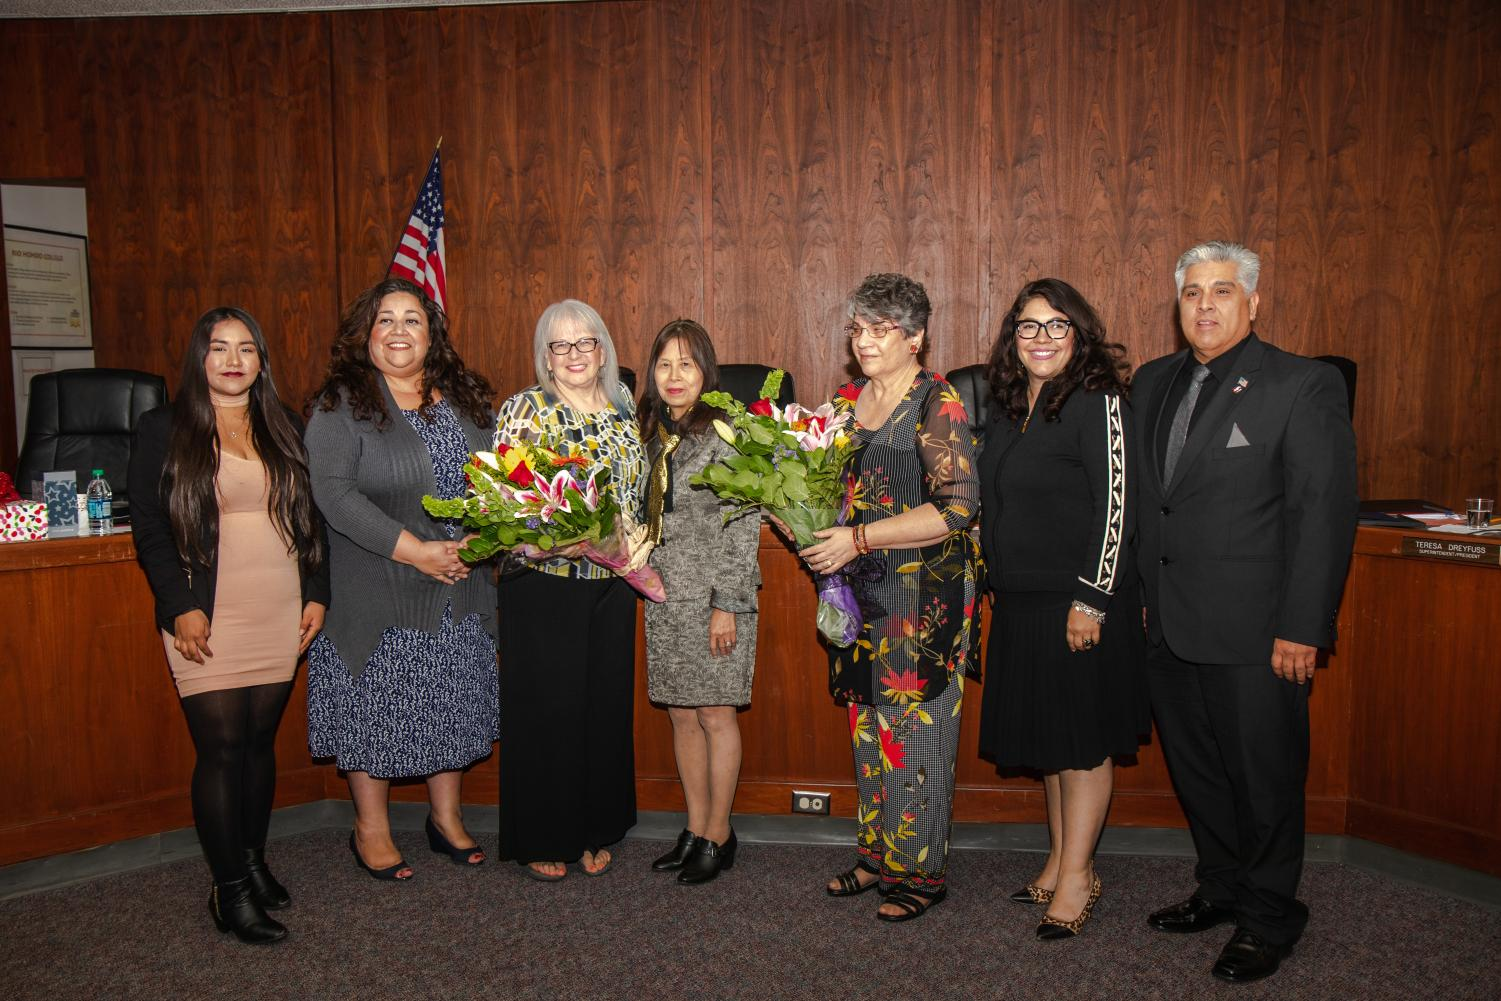 Board members Diana Laureano, Vicky Santana, Mary Ann Pacheco, School President Teresa Dreyfuss, and board members Norma  Edith Garcia and Gary Mendez pose for a picture during Shapiro's and Pacheco's last board meeting. (Photo by Brayan Altamirano)